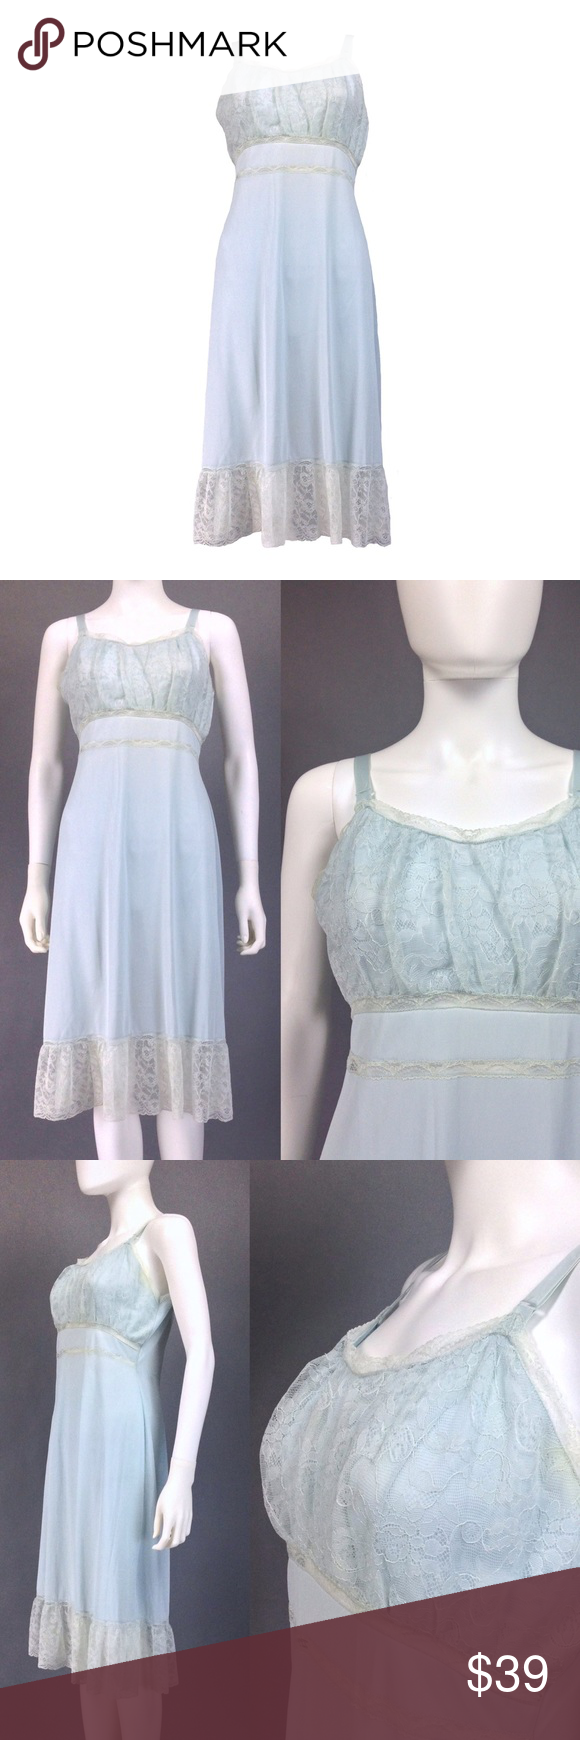 VINTAGE LINGERIE 50s Slip LACE HEM Powder Blue Coming soon Vintage Intimates & Sleepwear Chemises & Slips